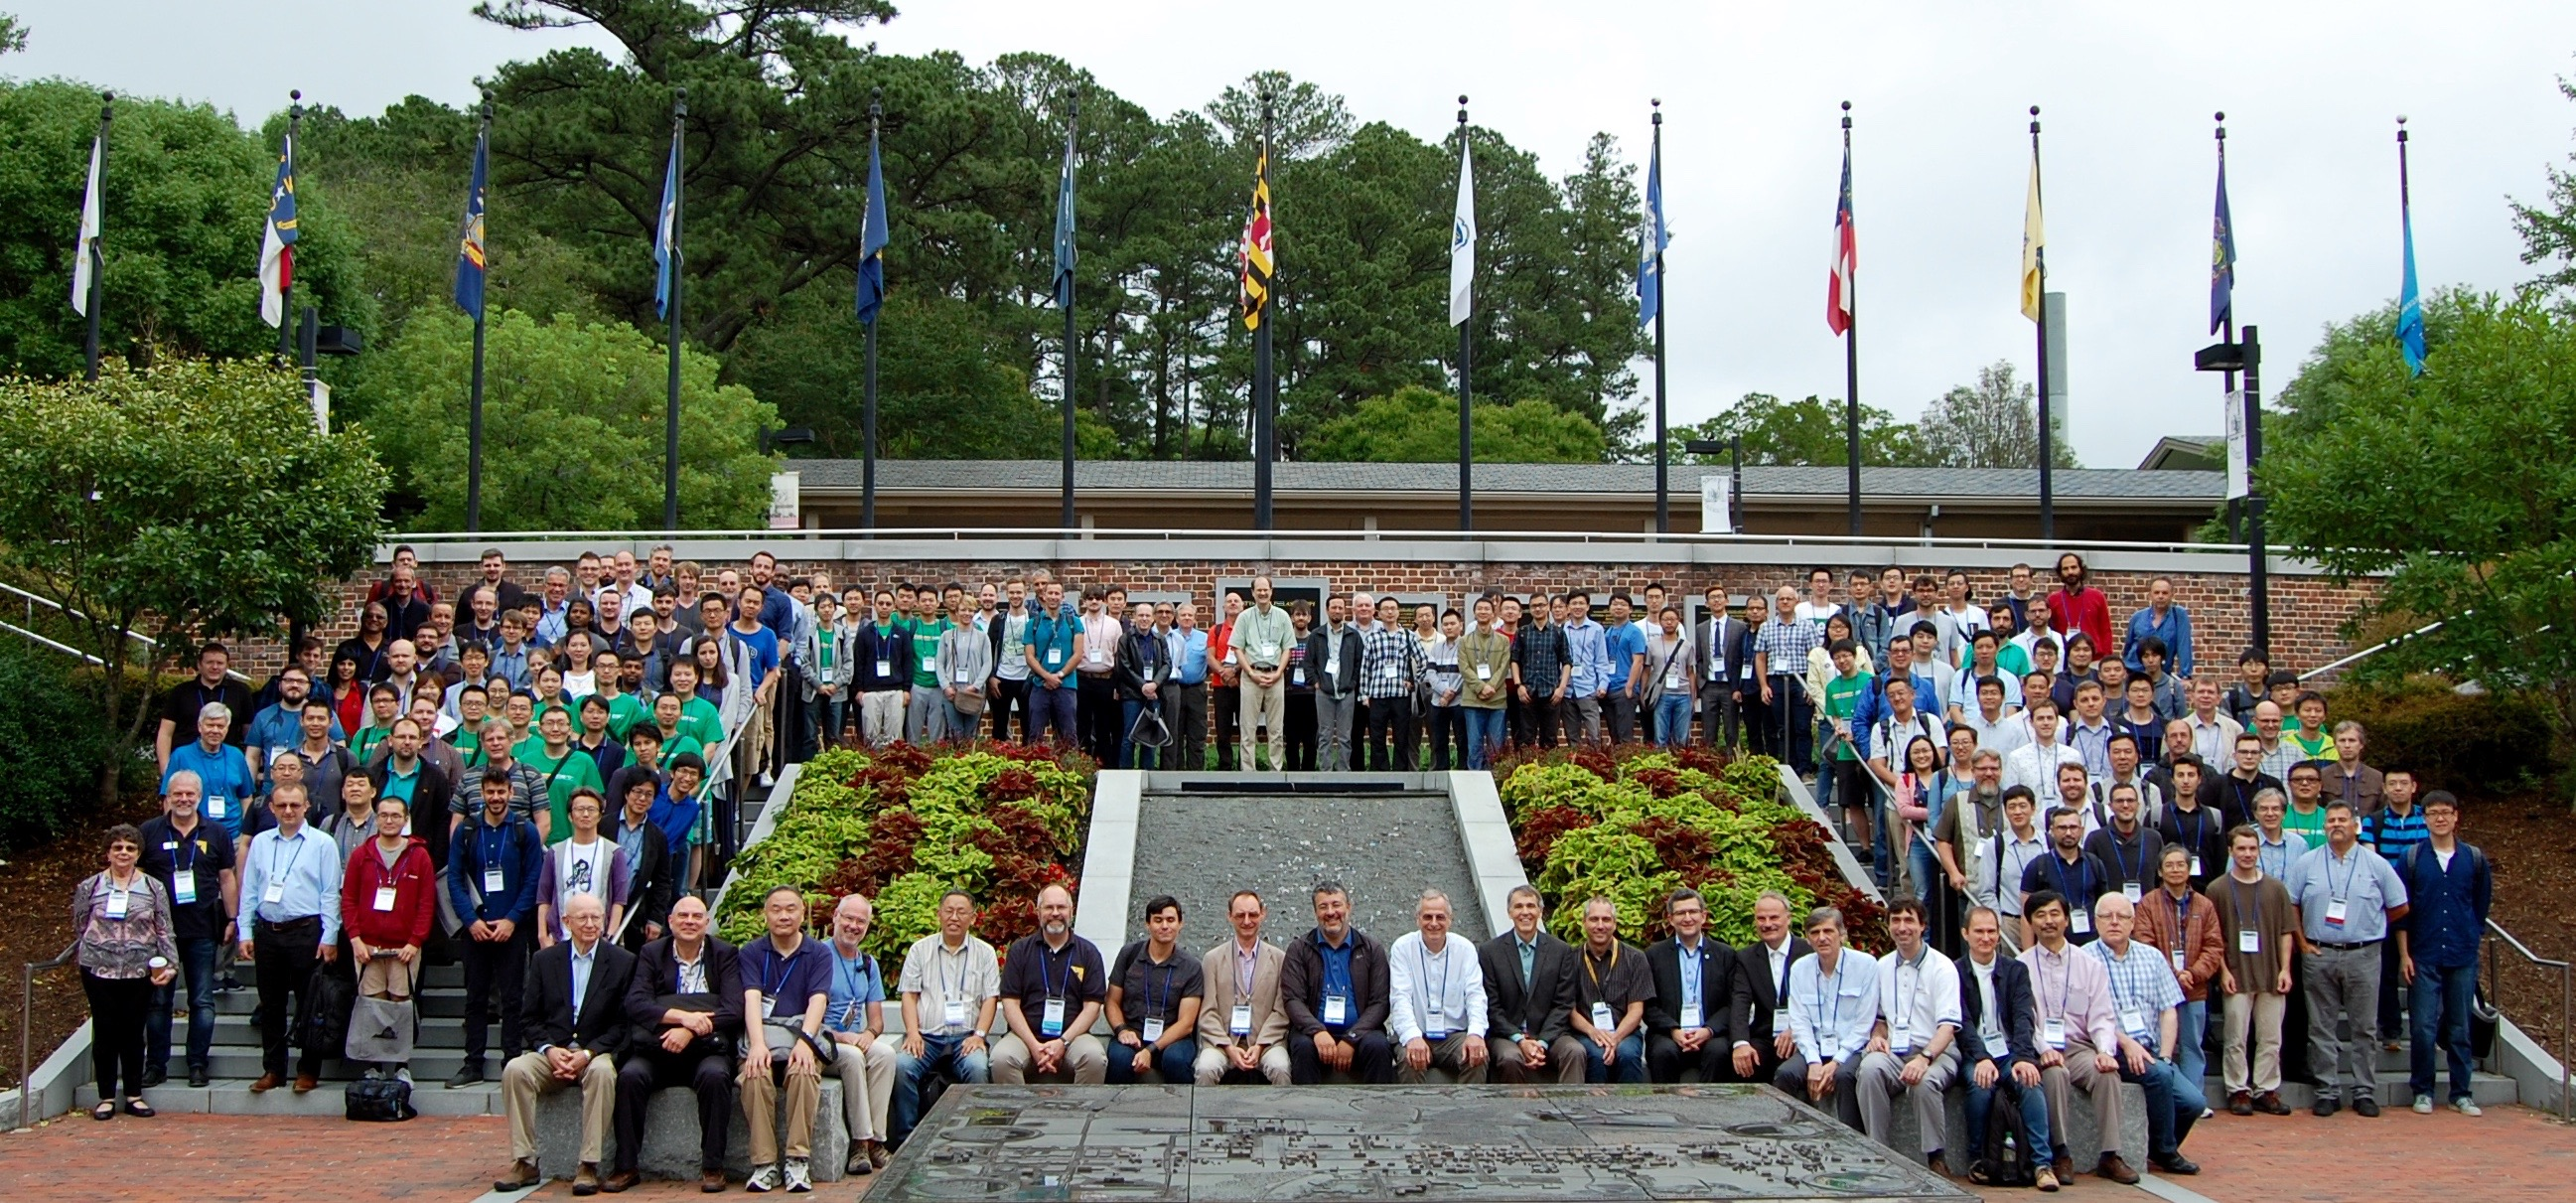 21st Ieee Real Time Conference Colonial Williamsburg 9 15 June Fastest 14 Bit Sample And Hold Amplifier The Edition Of Npss Is Now Closed We Had Over 200 Scientists Engineers From 17 Different Countries Participate